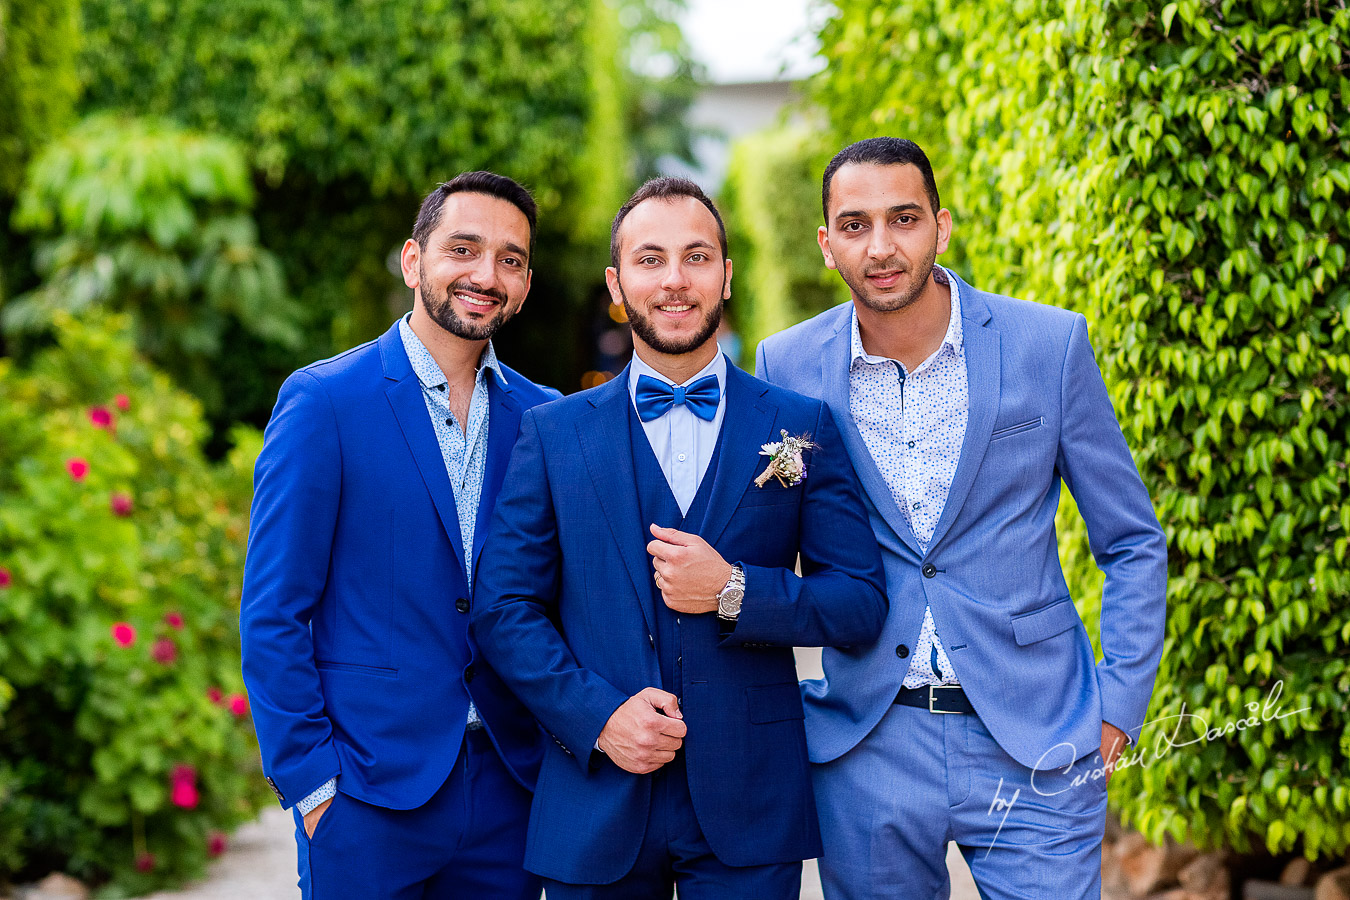 Portrait with the groom and his friends photographed as part of an Exclusive Wedding photography at Grand Resort Limassol, captured by Cyprus Wedding Photographer Cristian Dascalu.